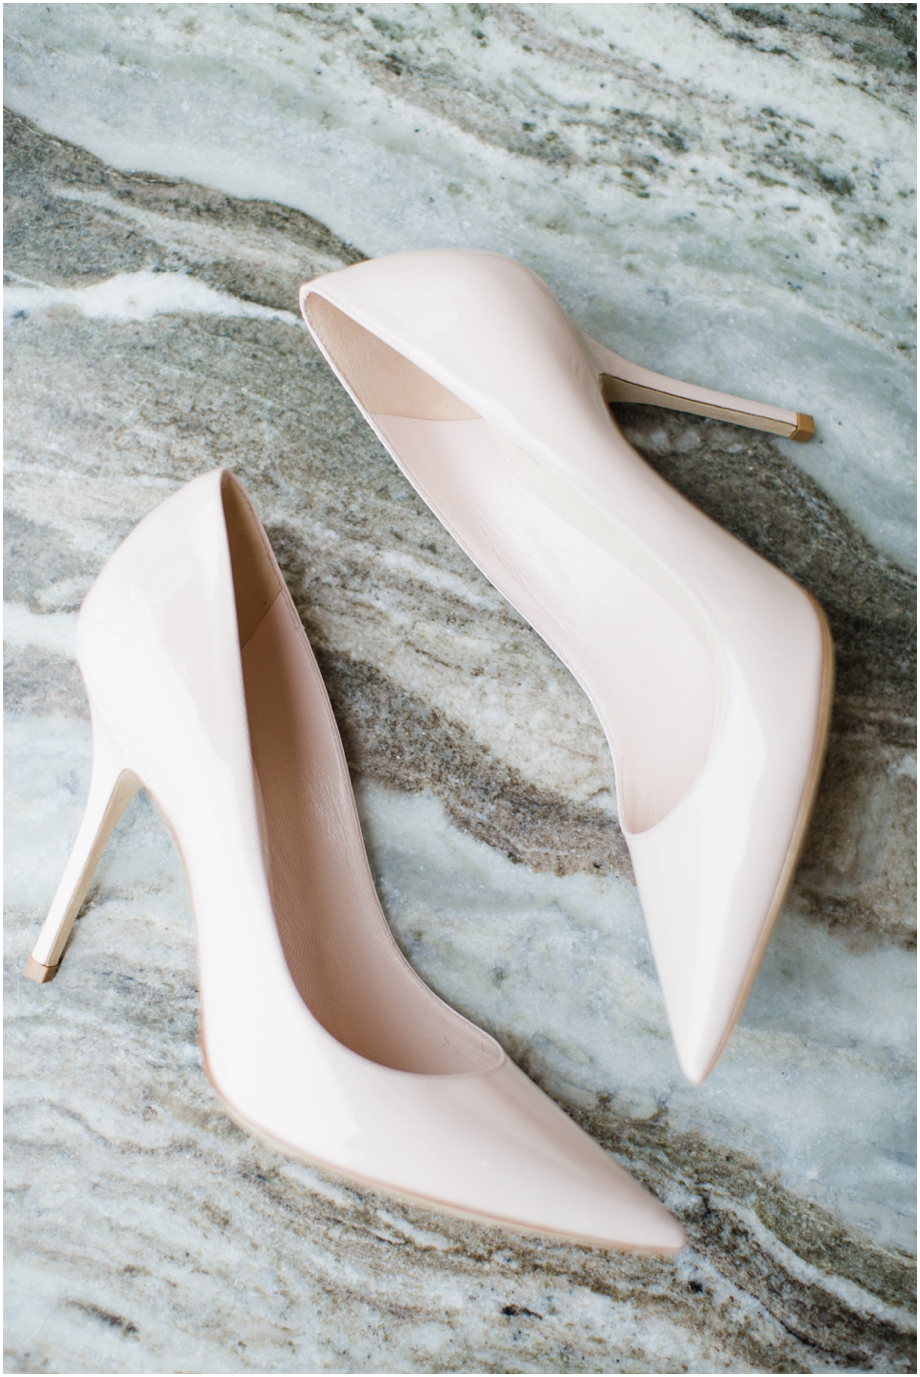 Christian Dior Shoes - Monarch Beach Wedding